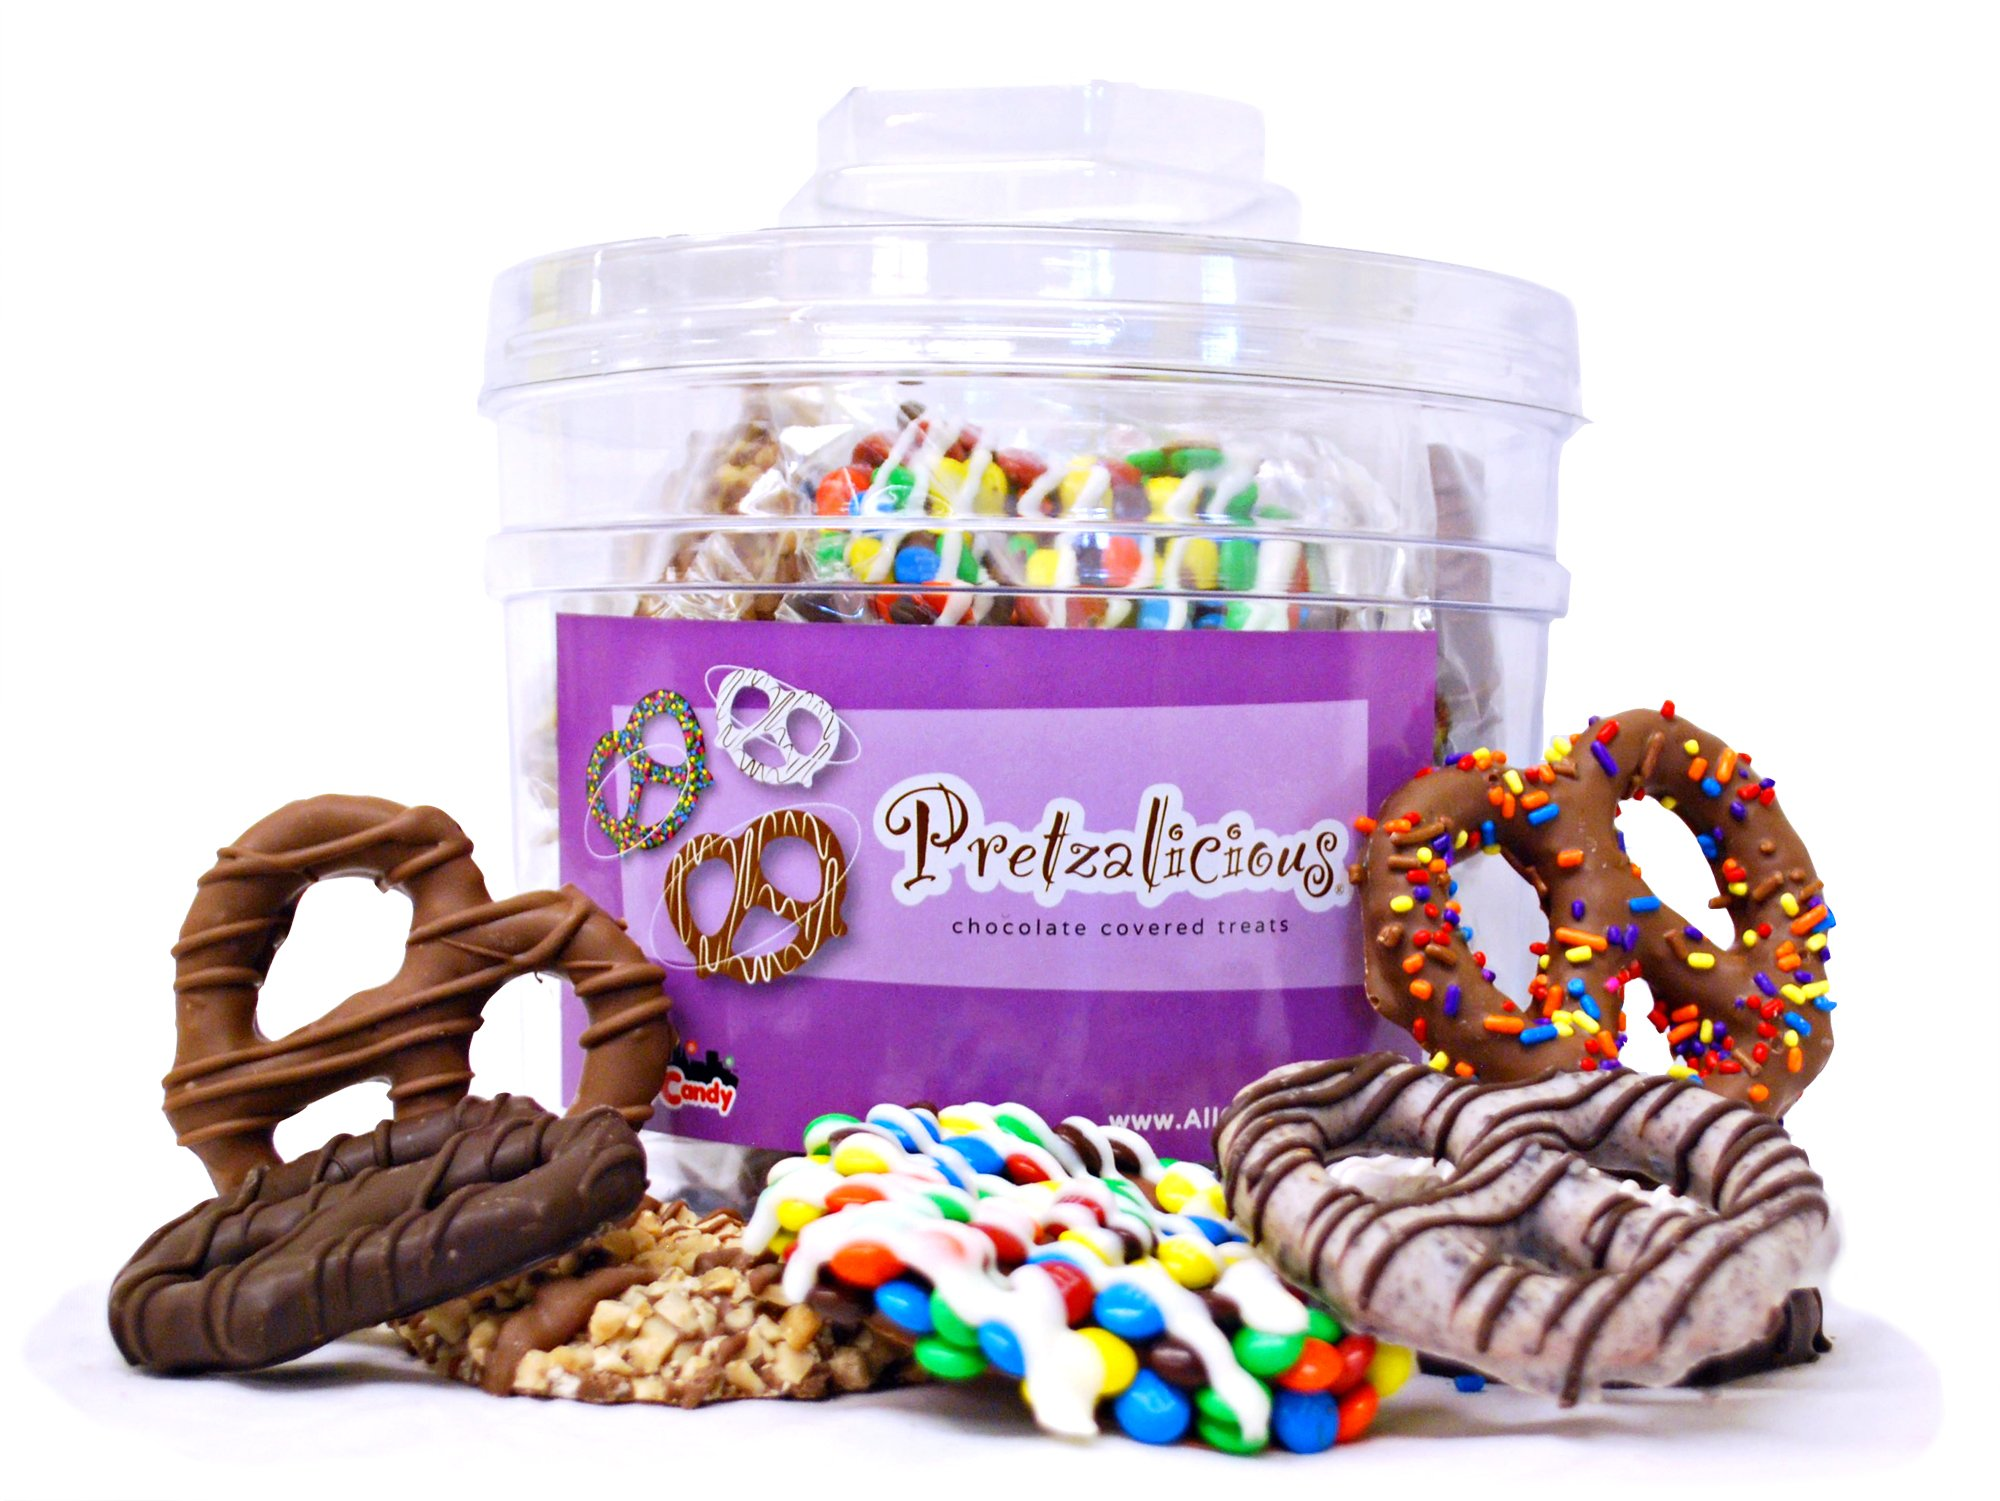 All City Candy's Bucket of Fun Hand Dipped Gourmet Chocolate Covered Pretzels and Cookies by All City Candy